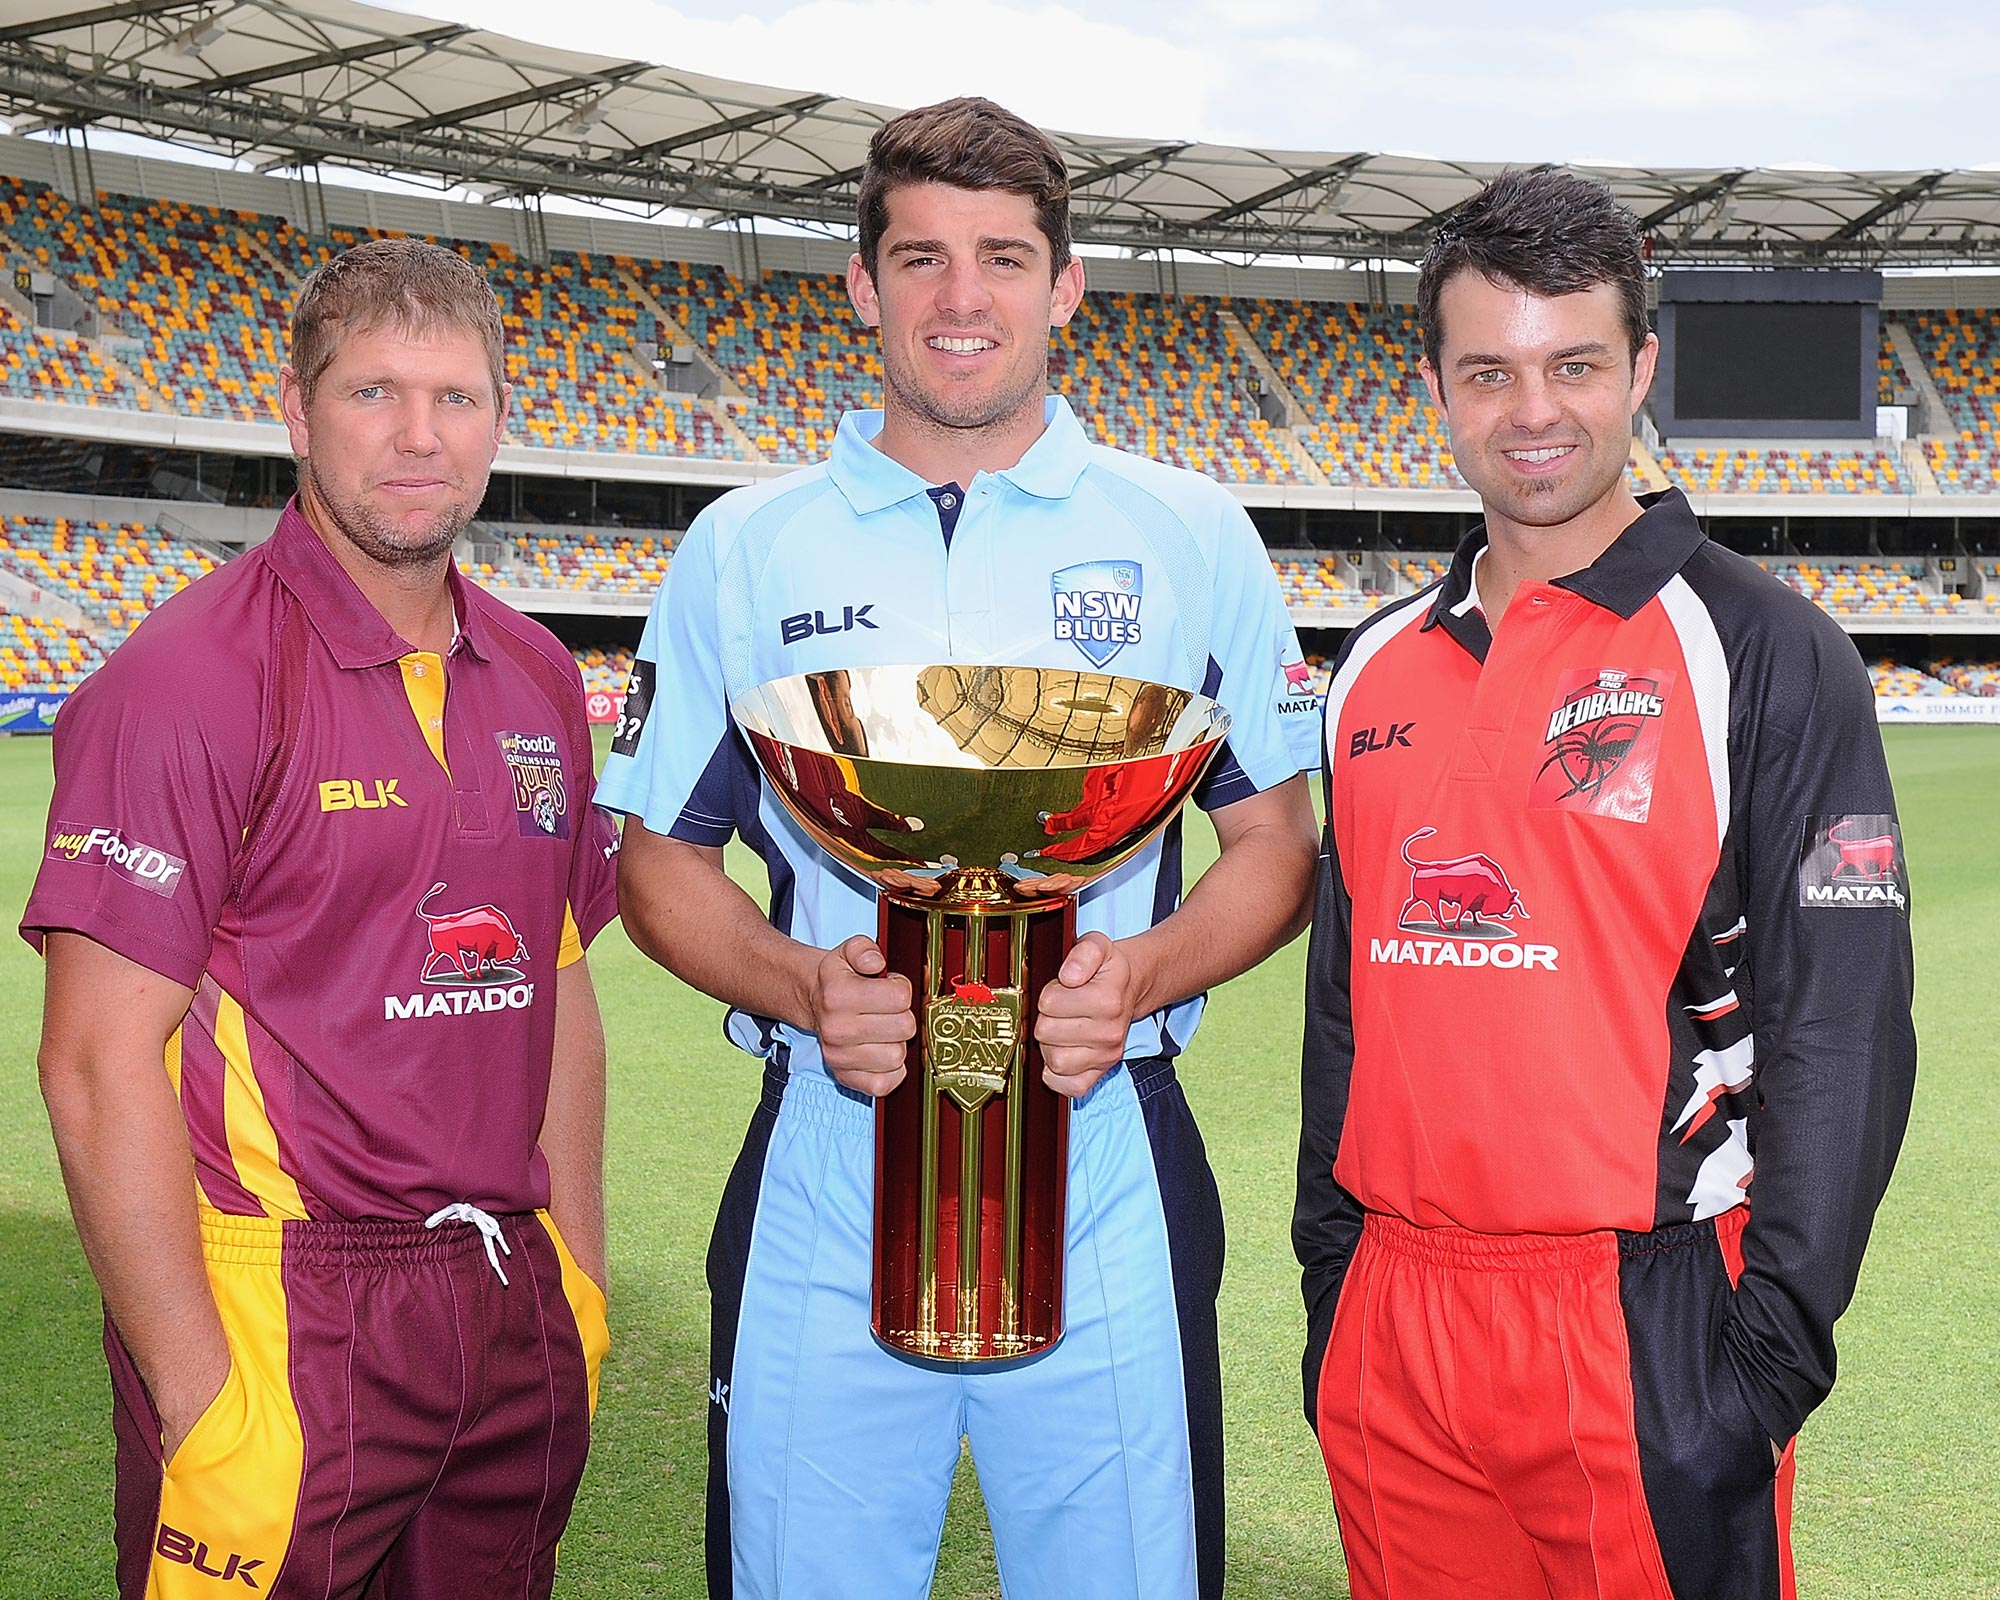 The 2014-15 Matador Cup is launched // Getty